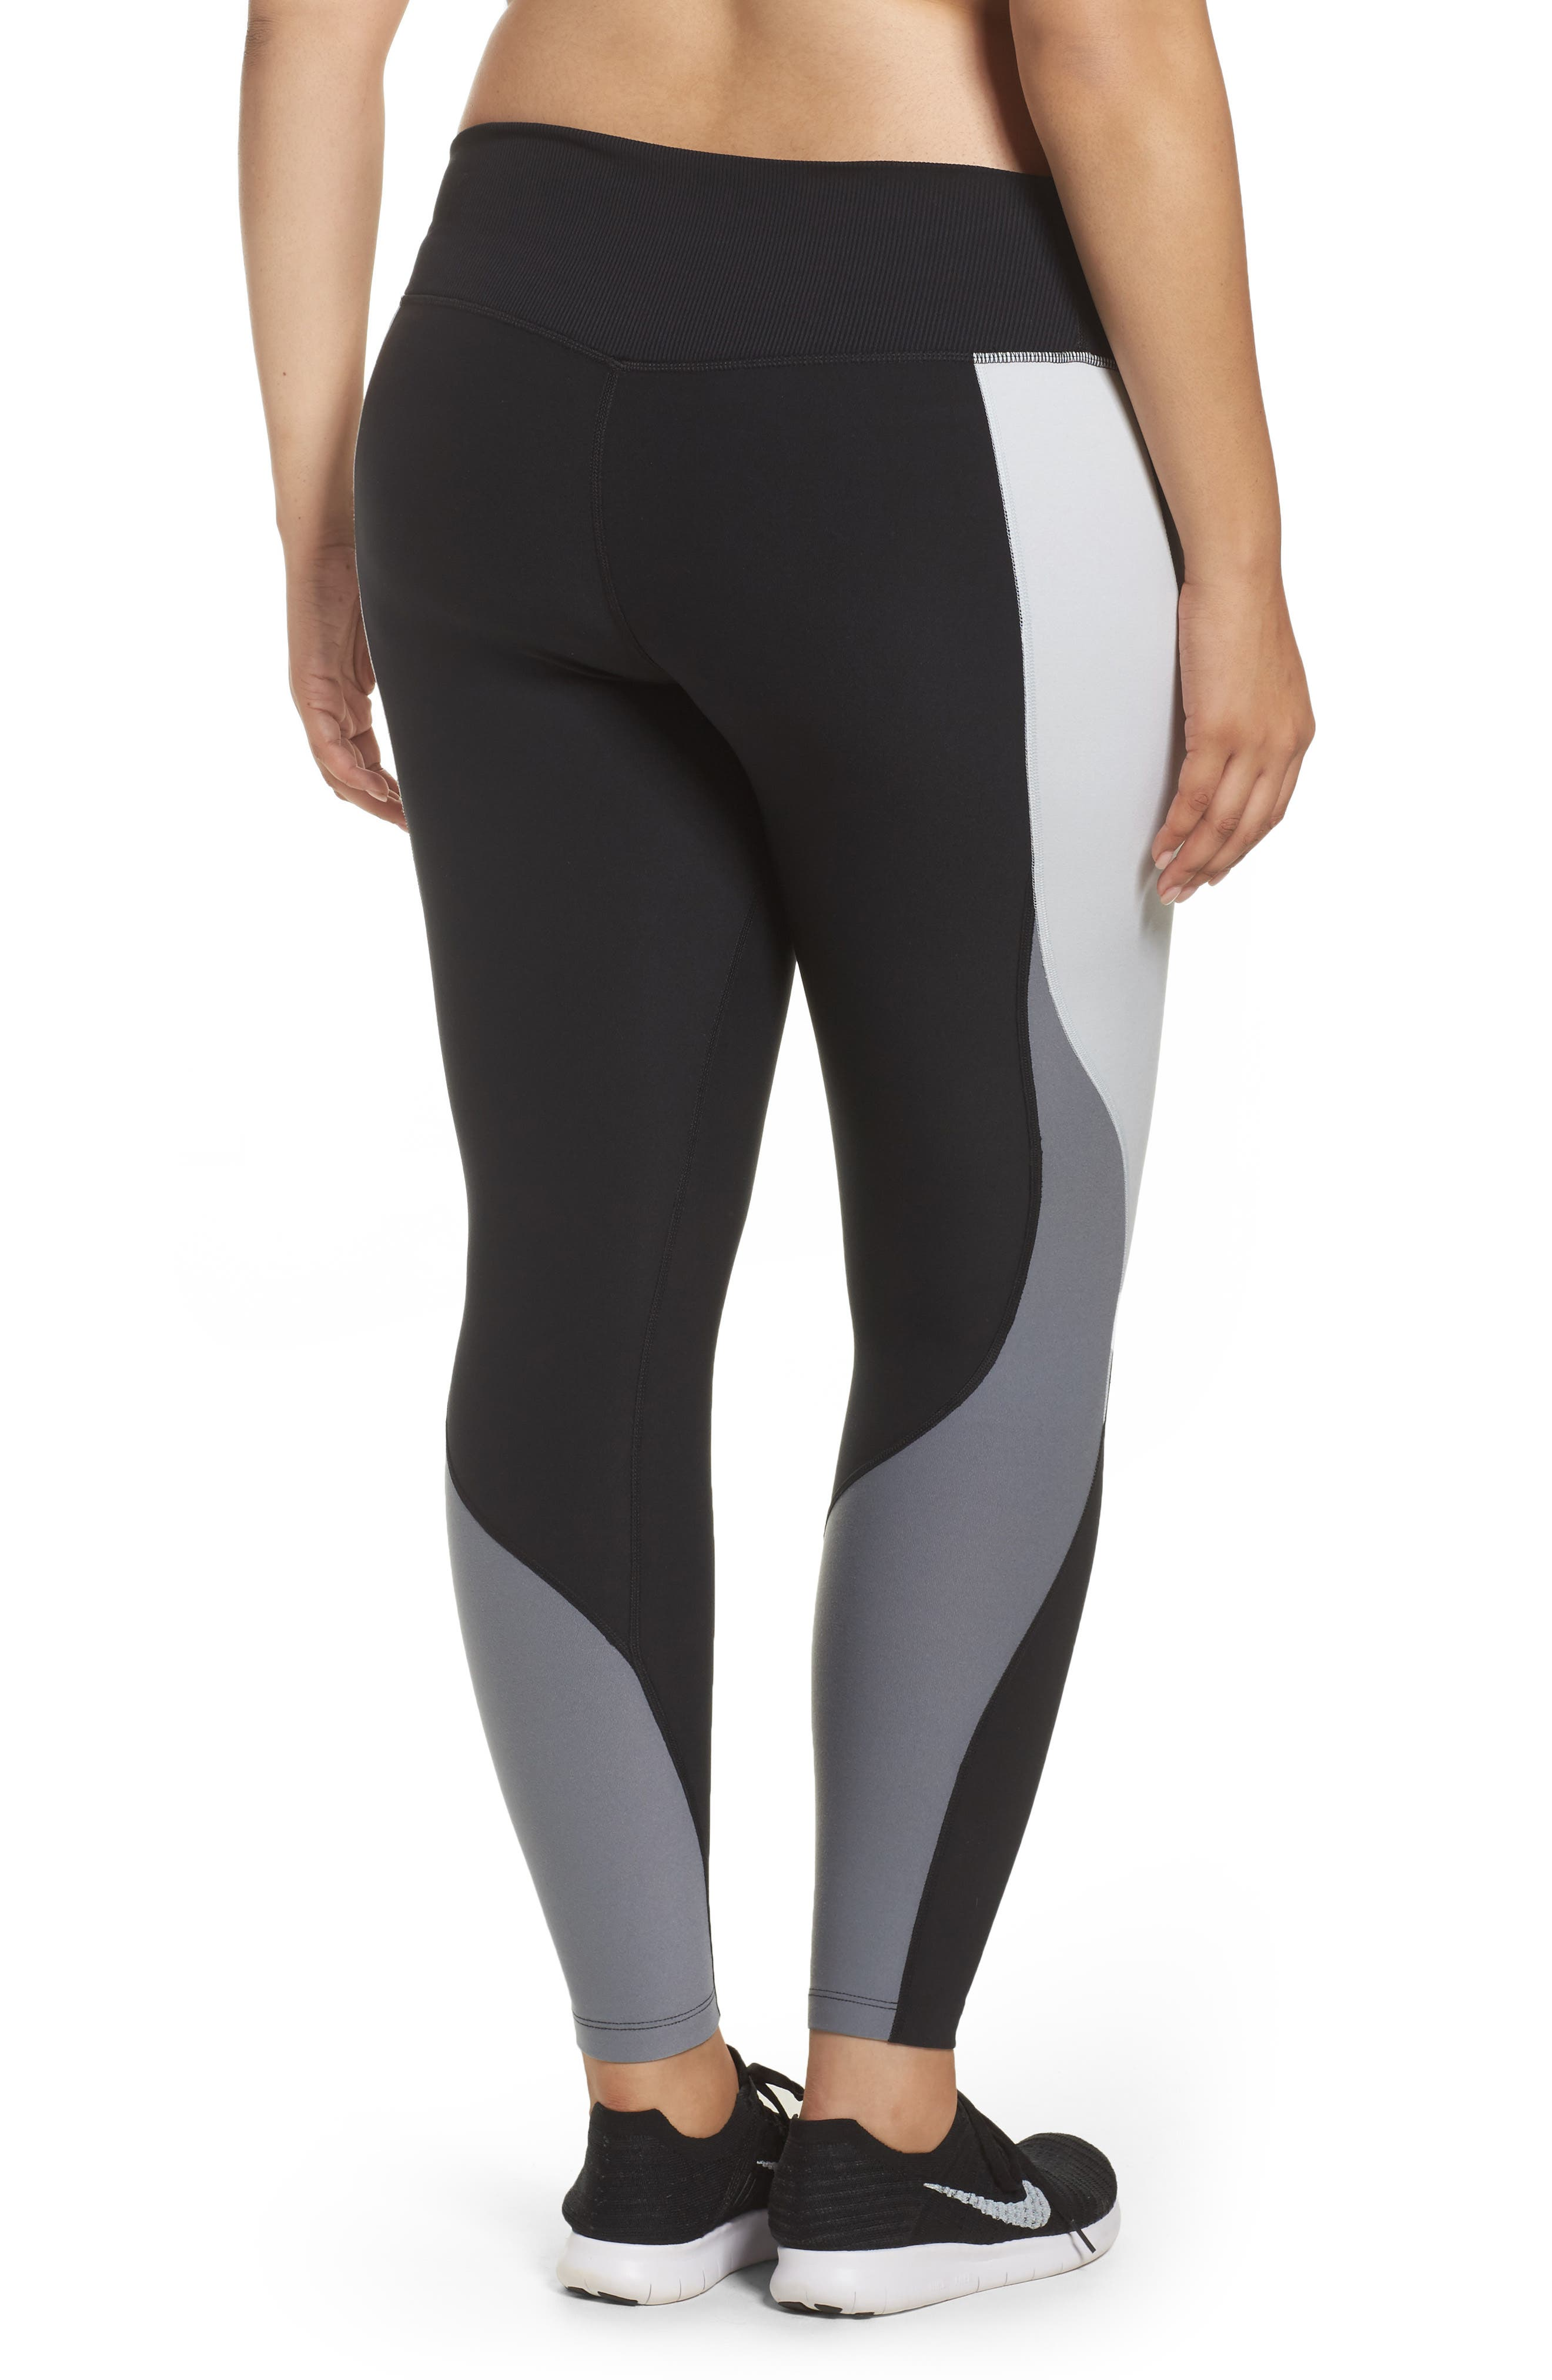 Power Legend Training Tights,                             Alternate thumbnail 2, color,                             Black/ Platinum/ Grey